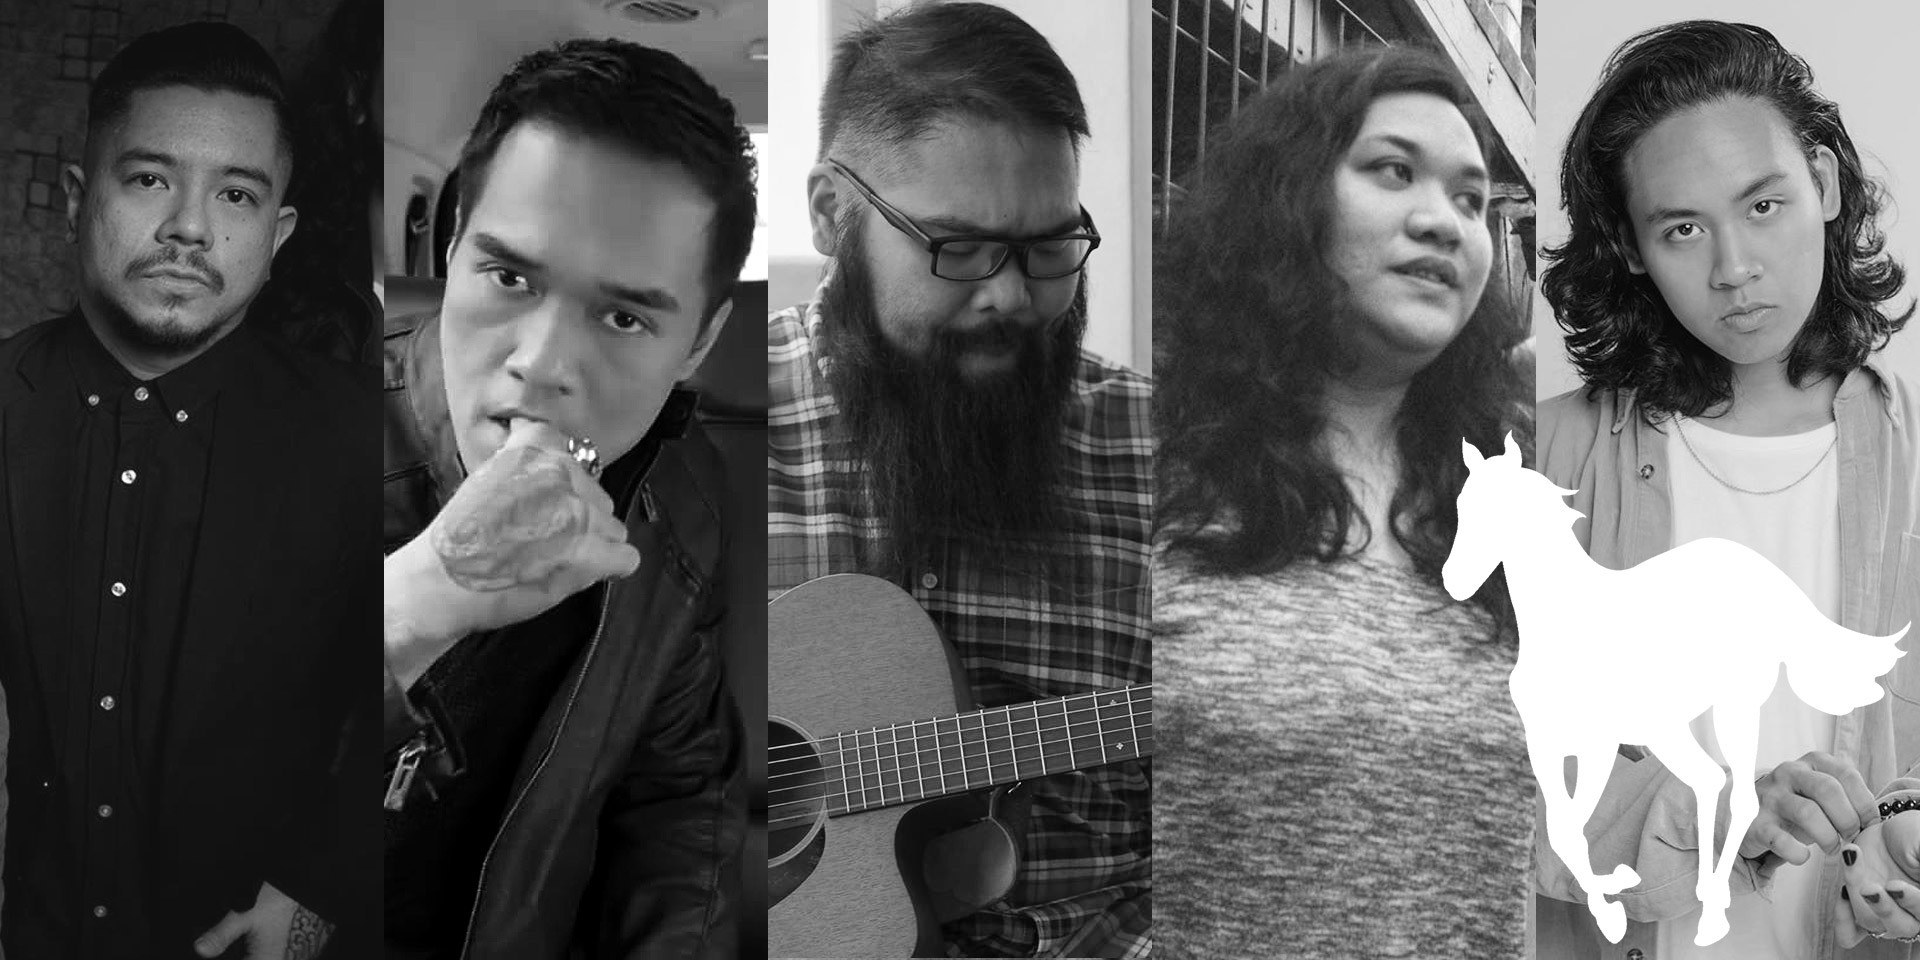 Filipino musicians talk about how Deftones' White Pony influenced their tastes and creative processes